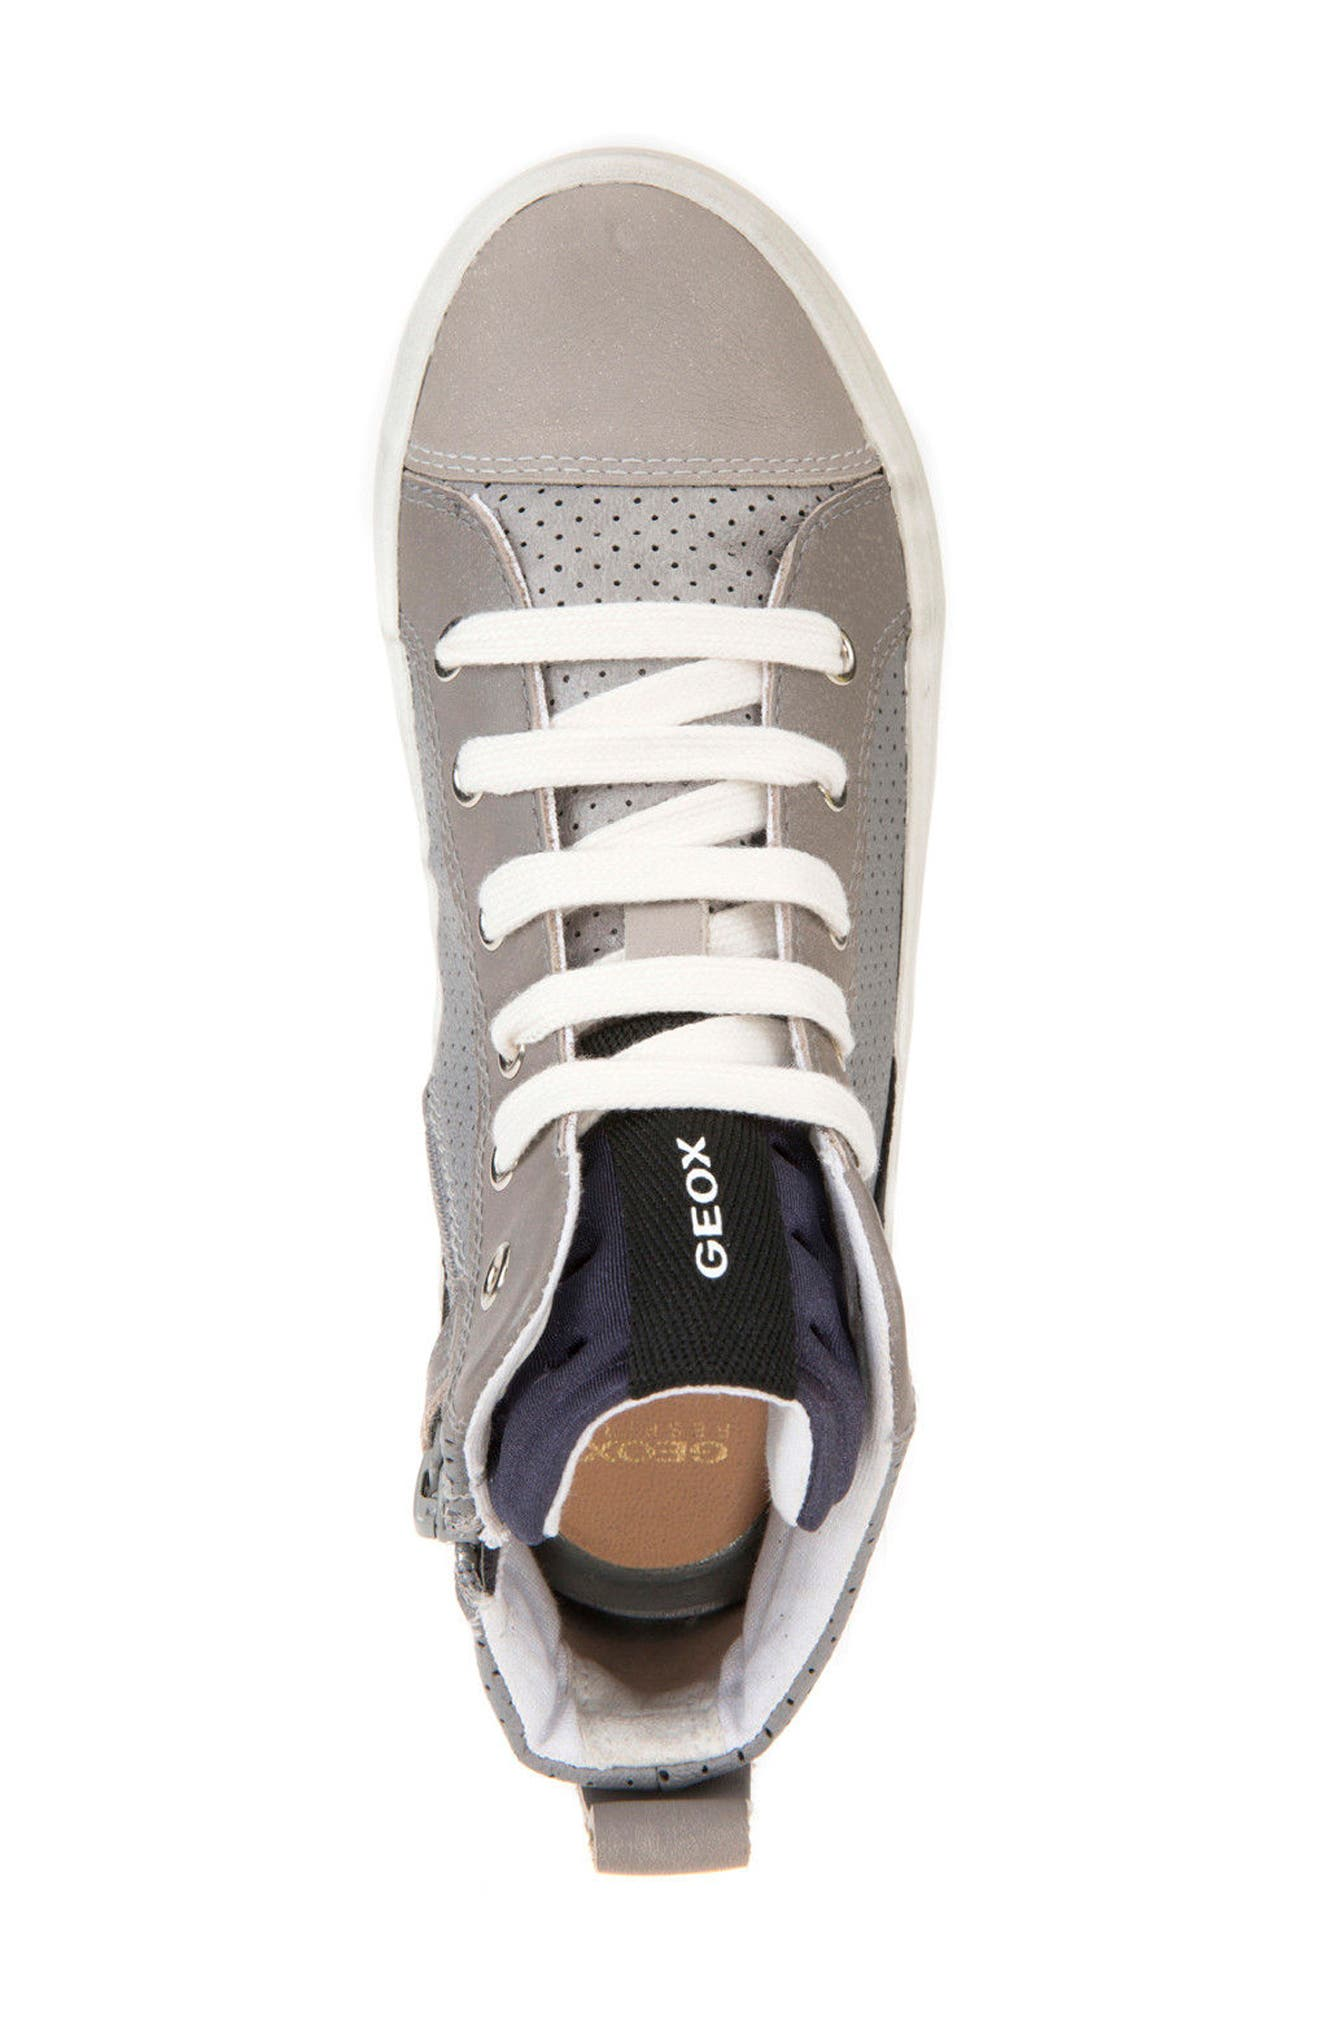 Alonisso Perforated Mid Top Sneaker,                             Alternate thumbnail 5, color,                             Grey/ Light Grey